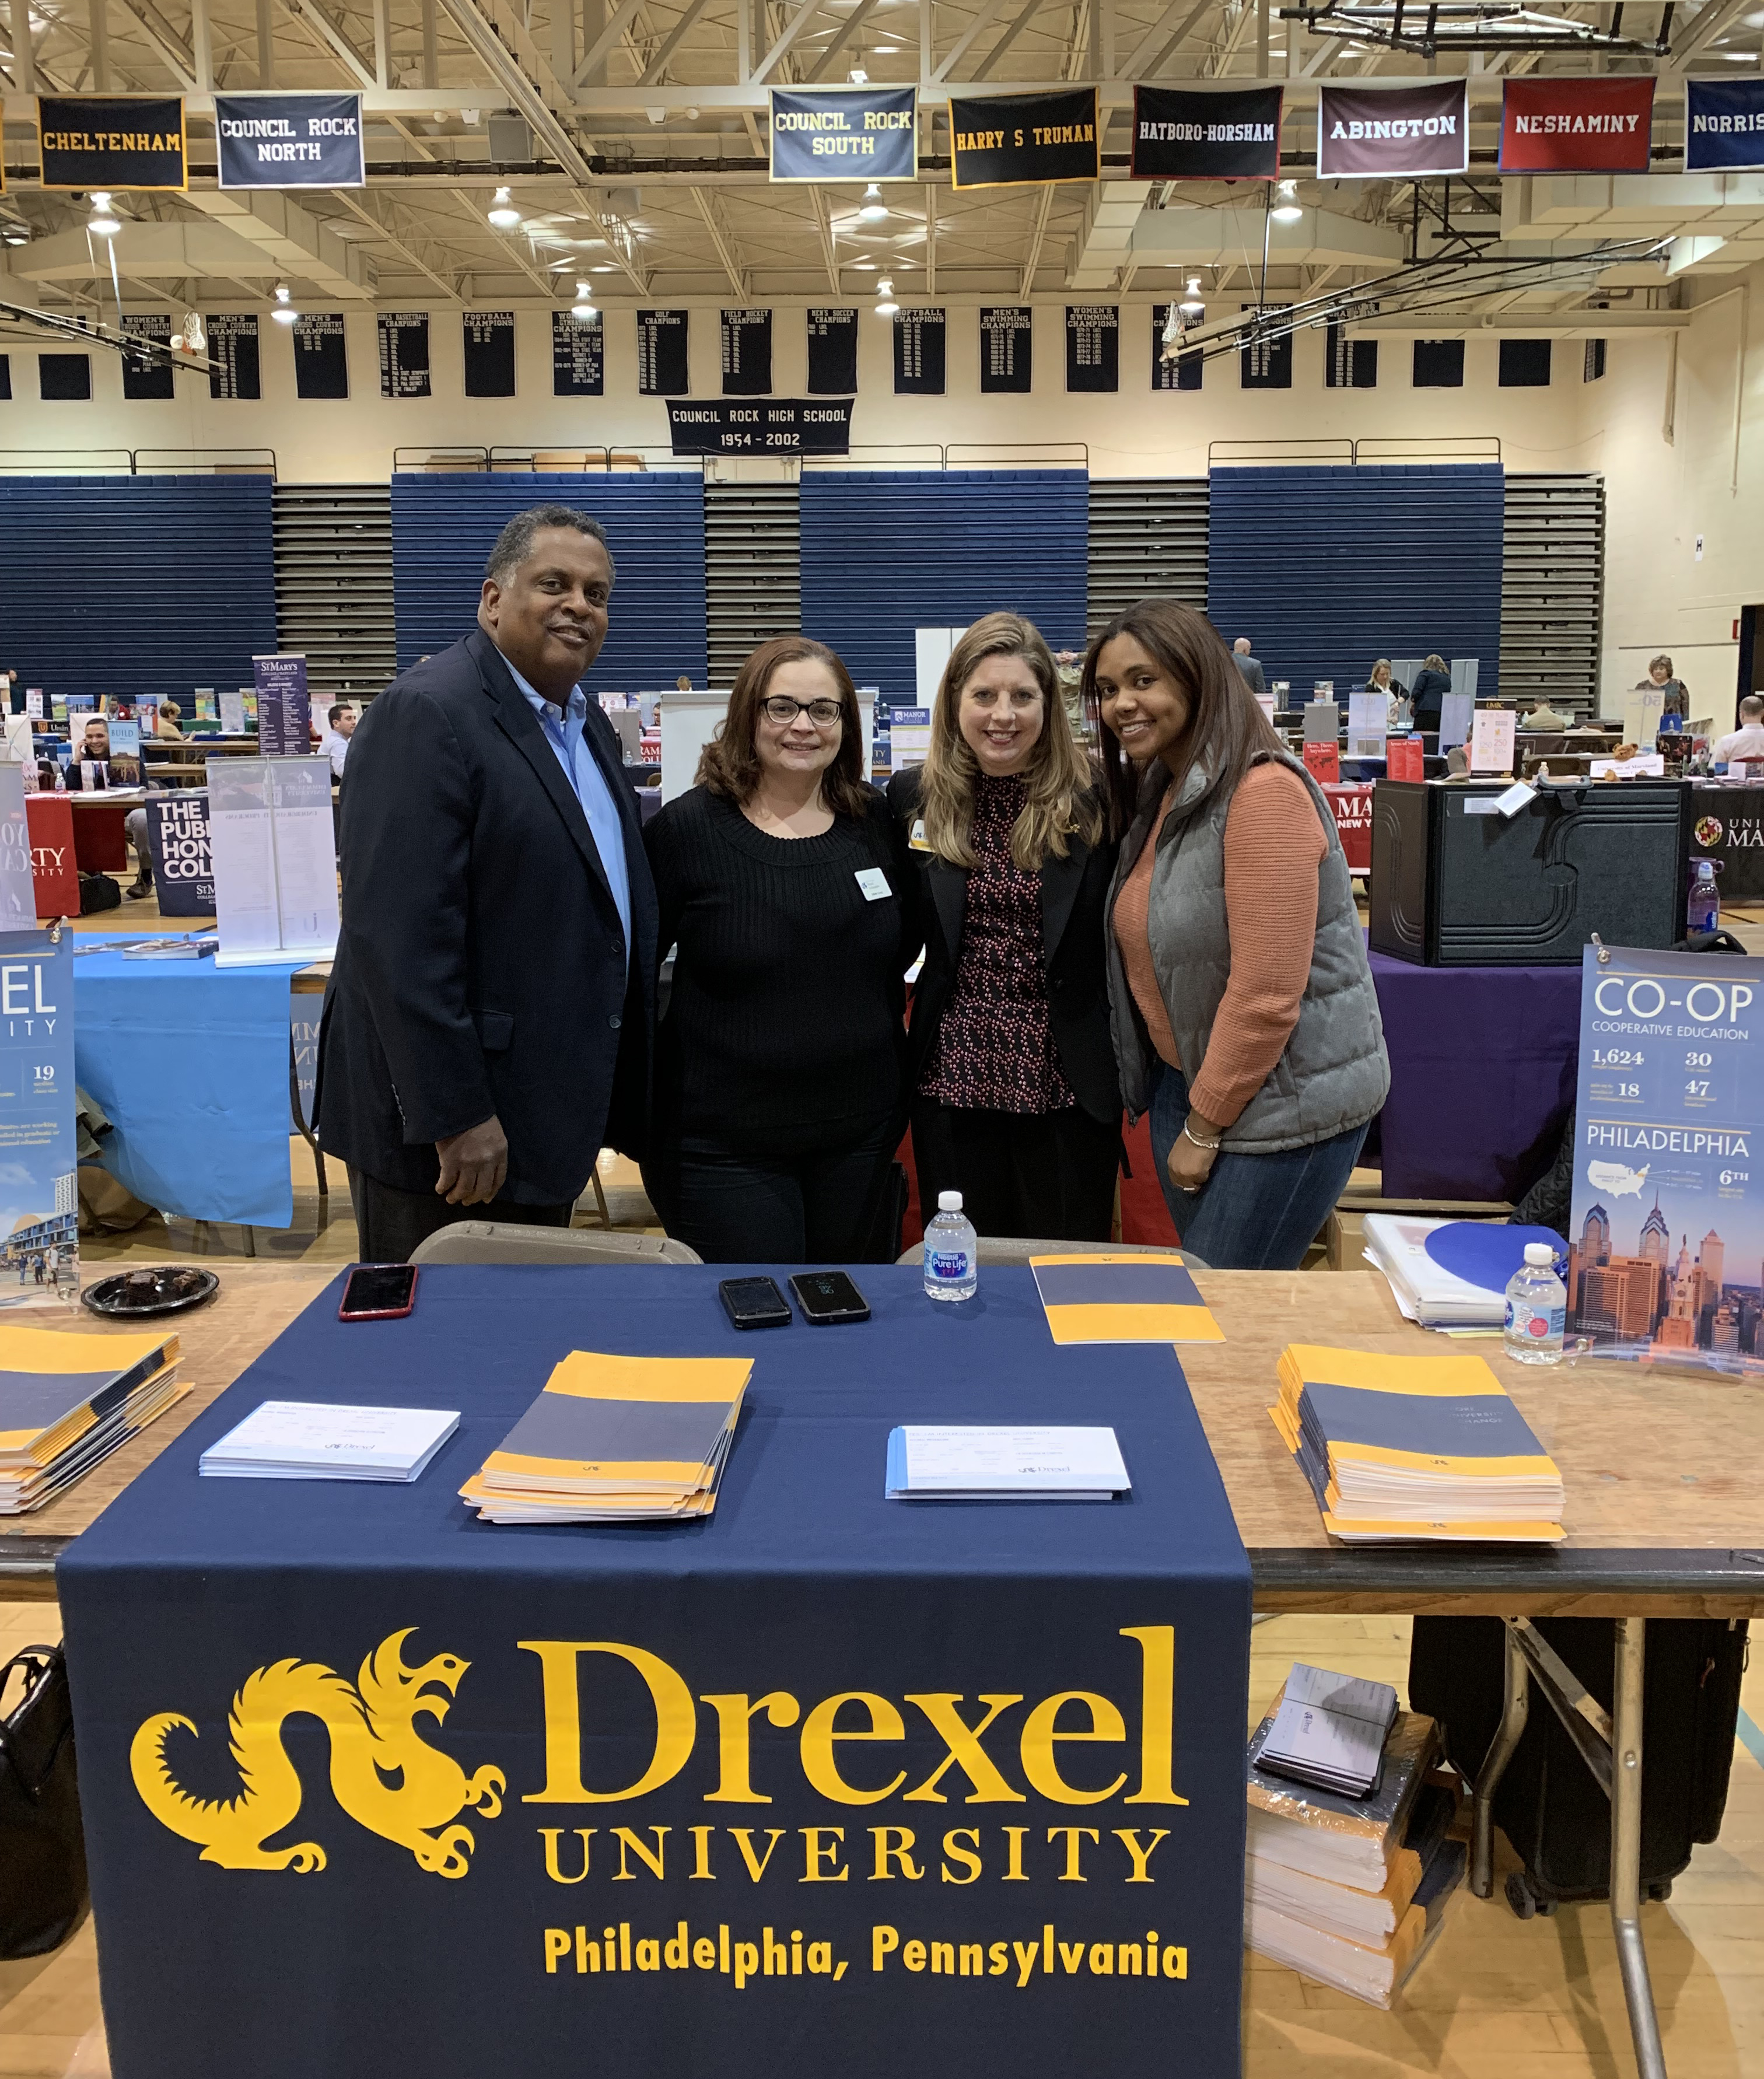 Alumni Ambassadors Carvon Johnson, BS '85, MS '88; Izabelle Gómez, BS '04; Catherine Campbell-Perna, BS '95, MS '11; and Janai Johnson, BS '18 talk to perspective students and their parents at a packed college fair at Council Rock North High School in Bucks County, Pennsylvania.